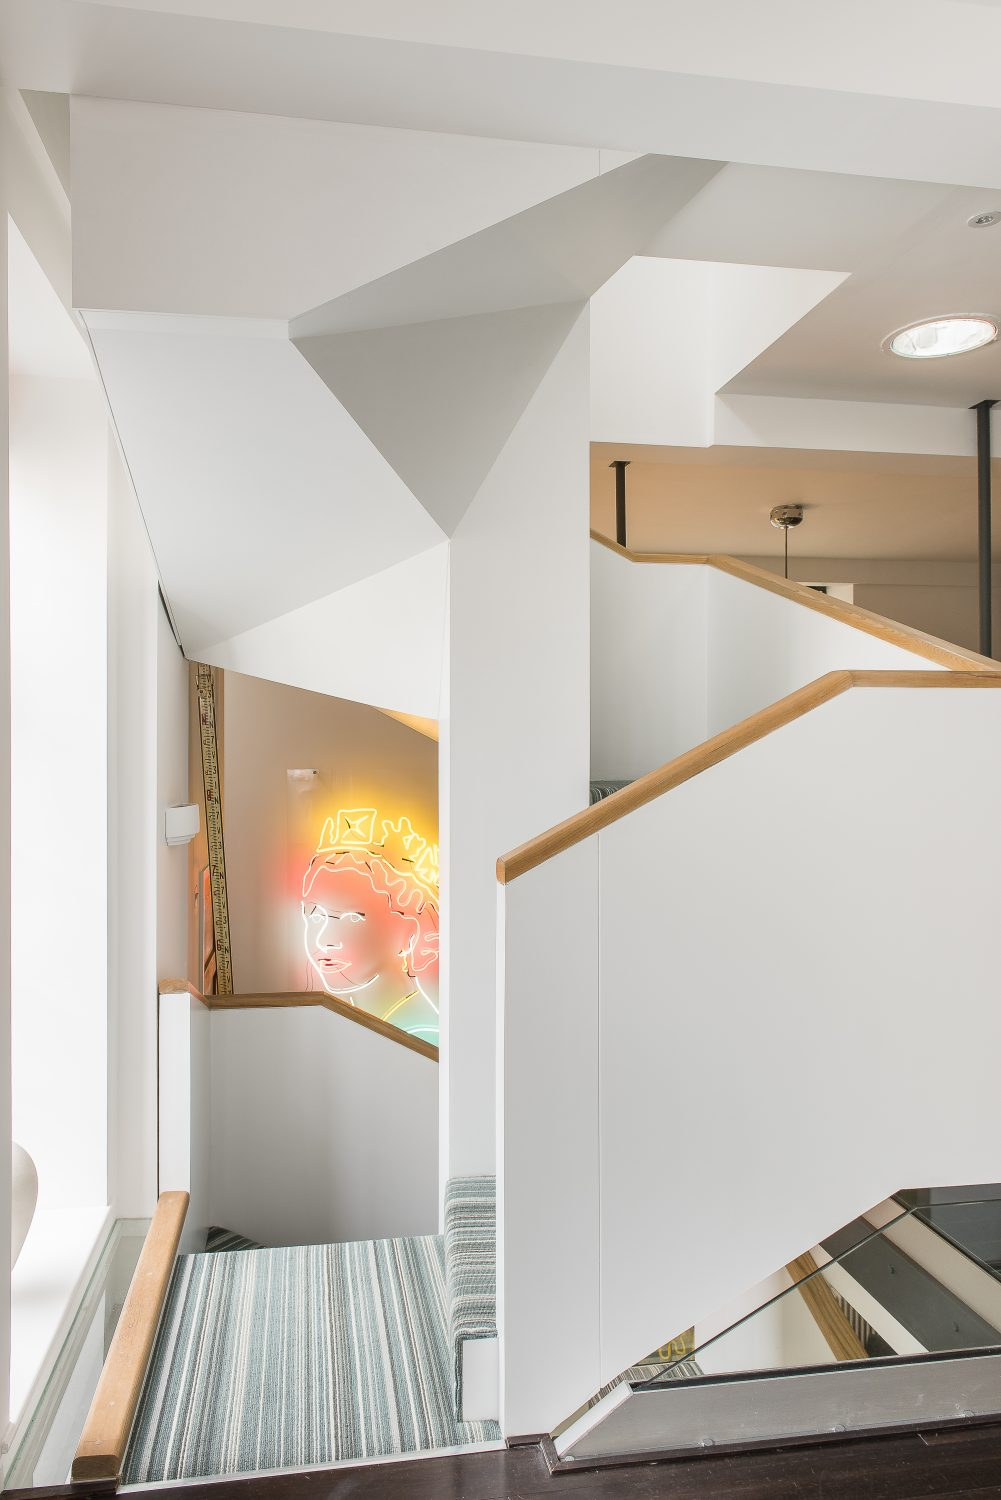 A specially designed helical staircase, built from MDF by a local company, dominates the centre of the house